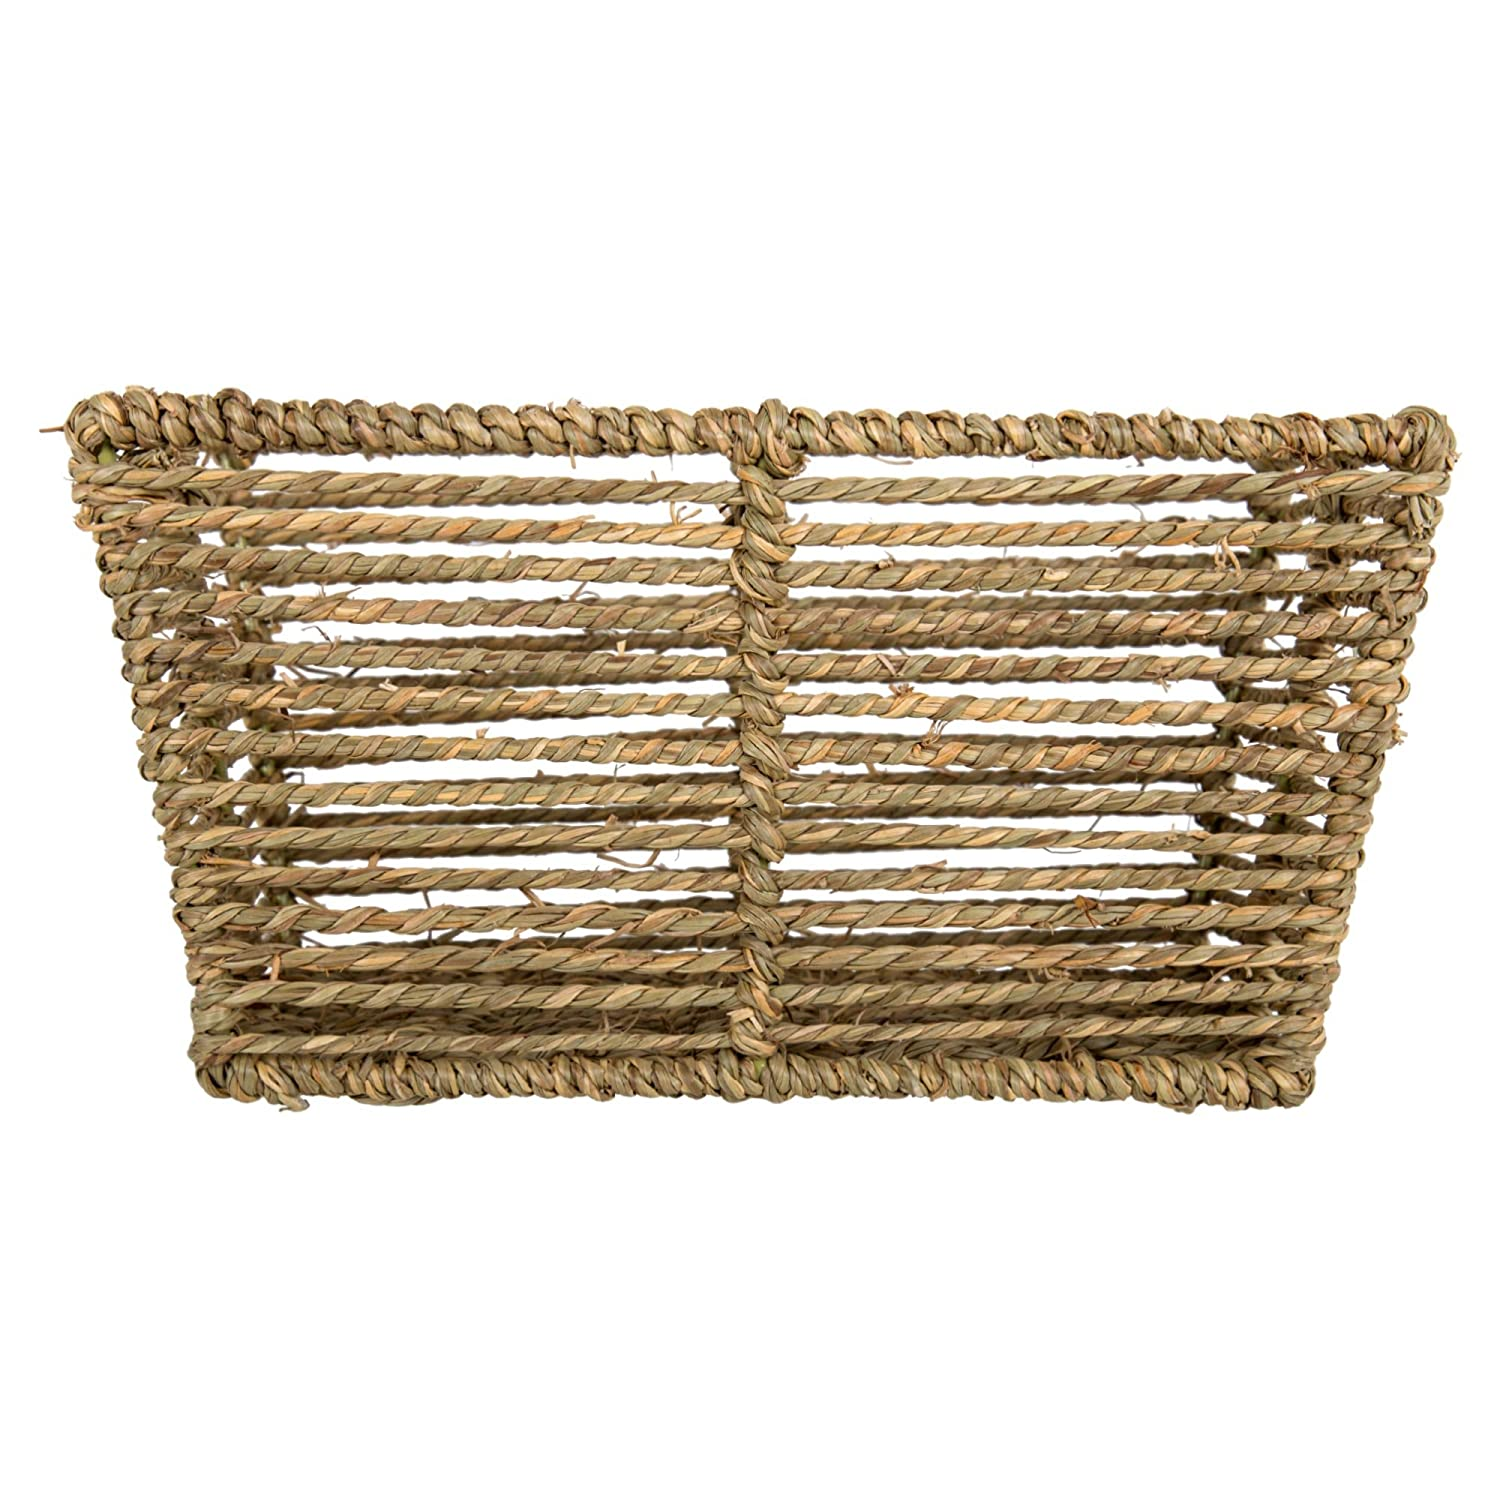 10.5 x 5.5 inches Truu Design Woven Seagrass Storage Basket Beige